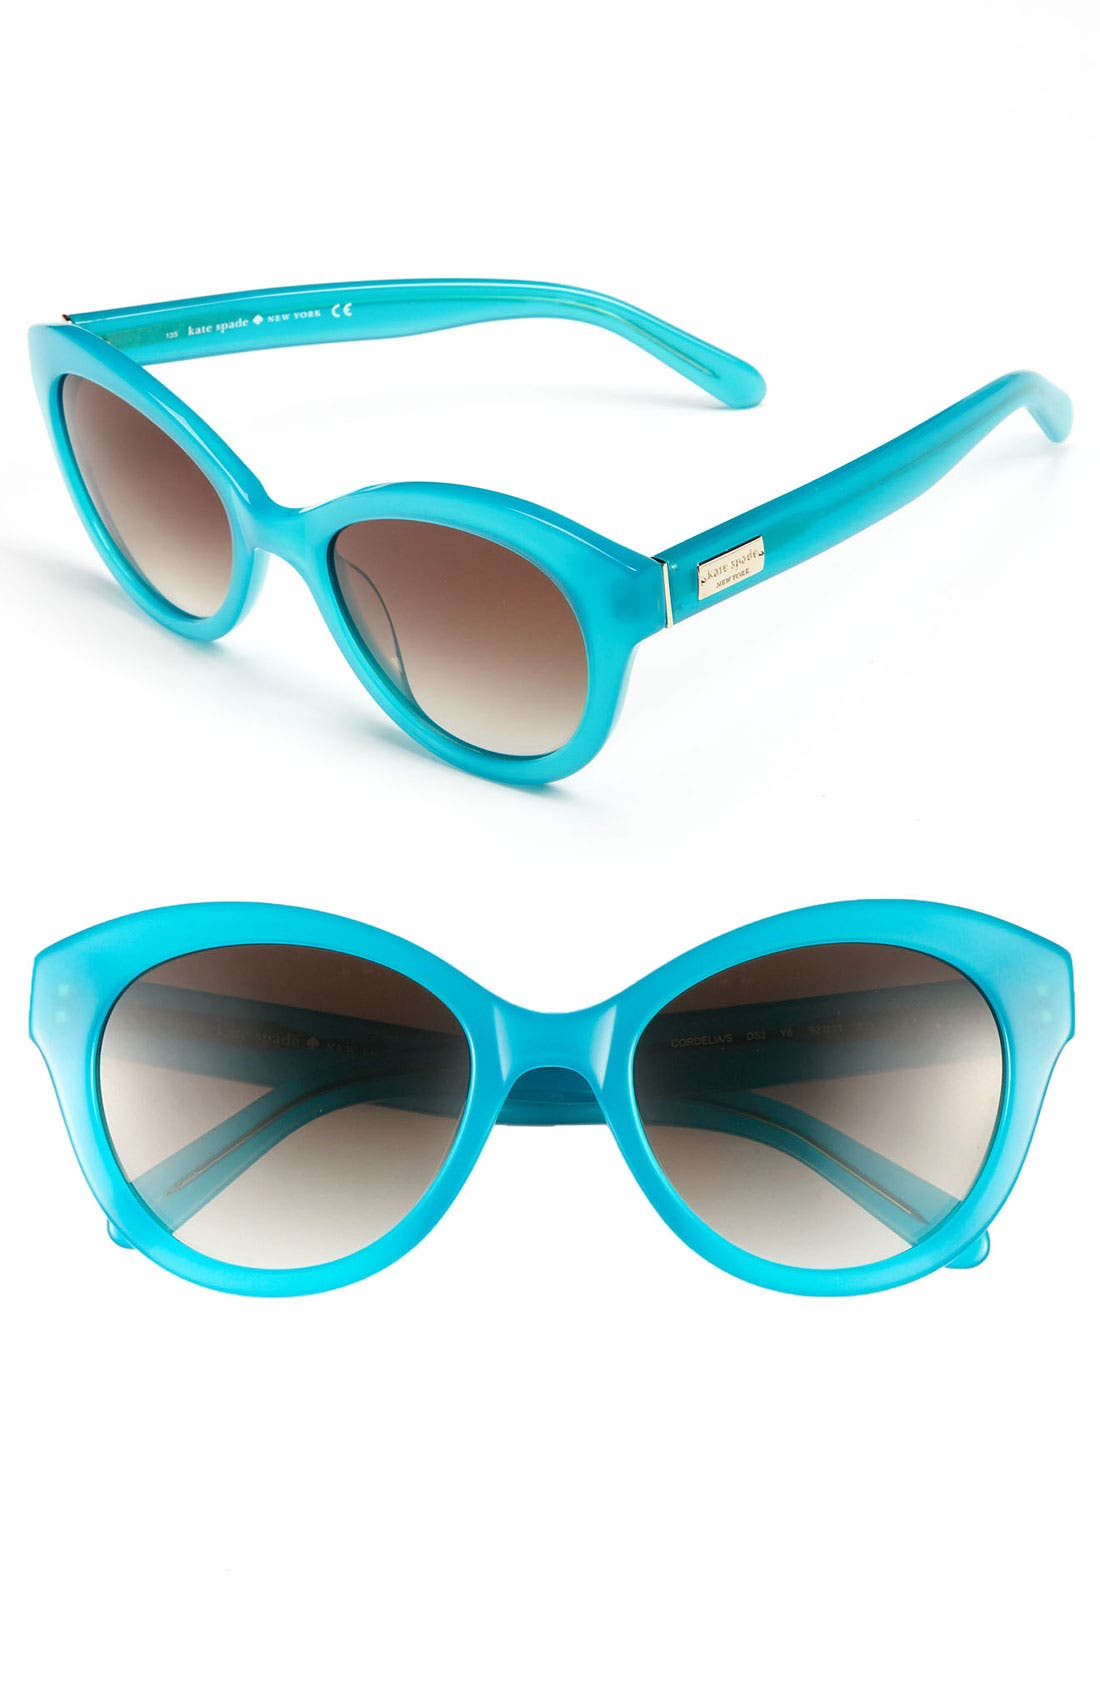 Alternate Image 1 Selected - kate spade new york 'cordelia' 52mm retro sunglasses